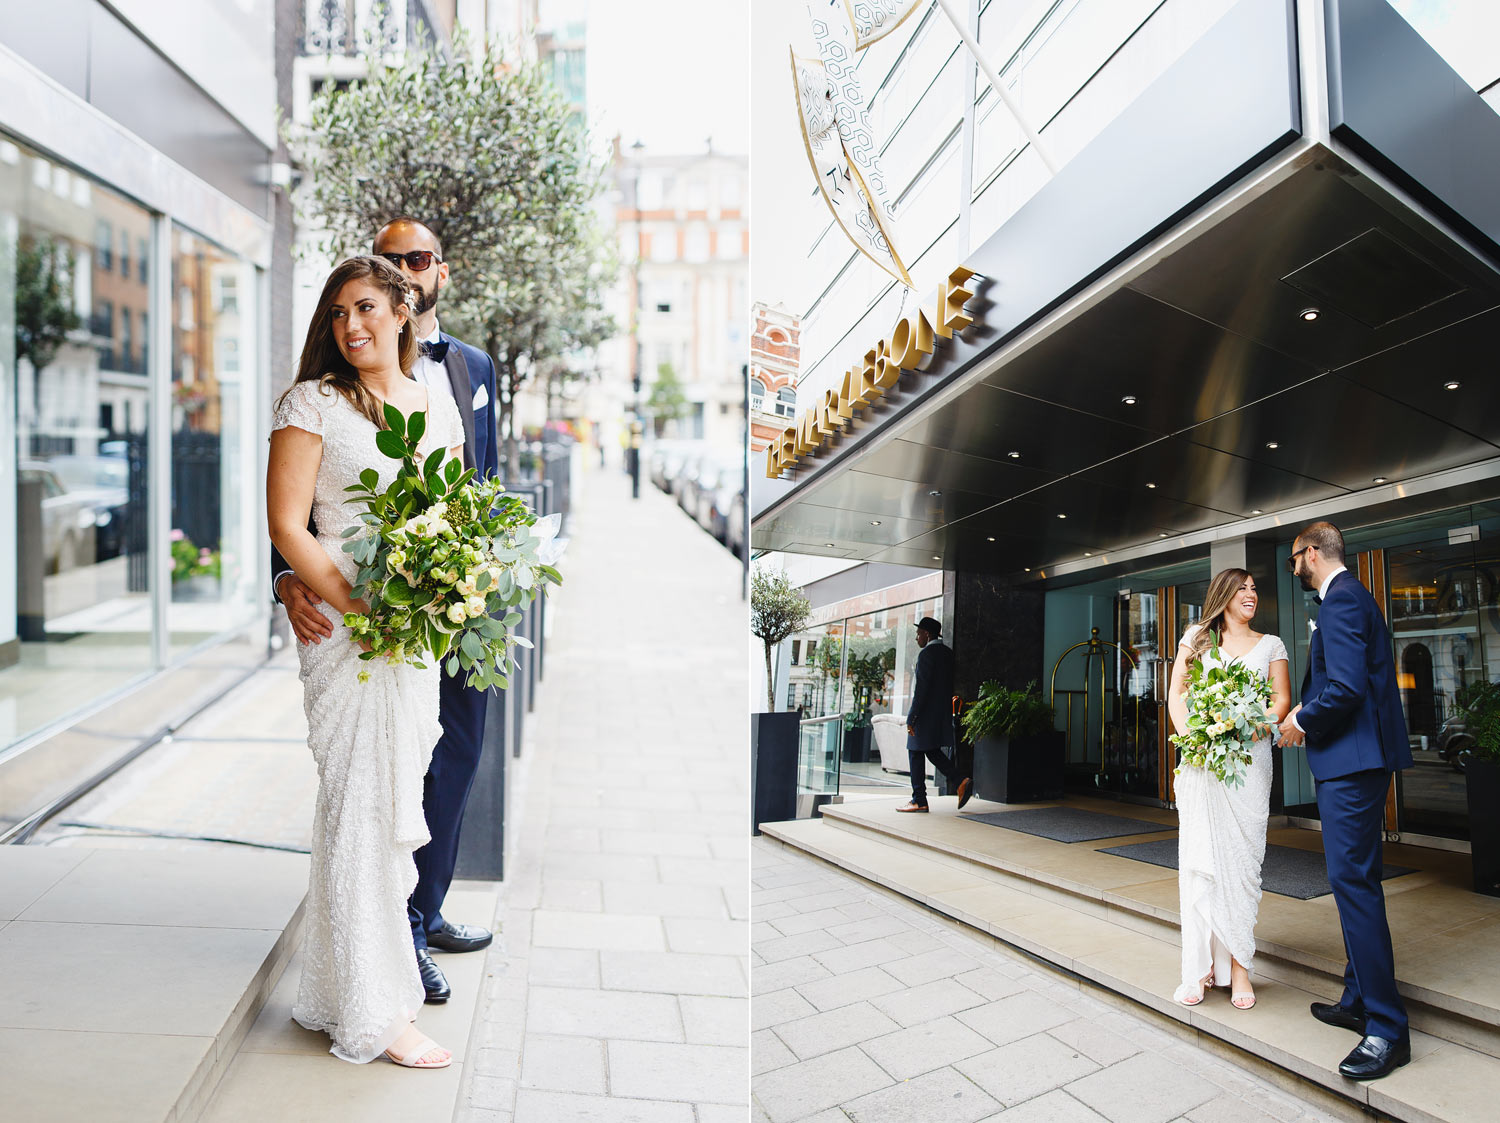 A couple wait for a taxi outside The Marylebone Hotel - London wedding photographer